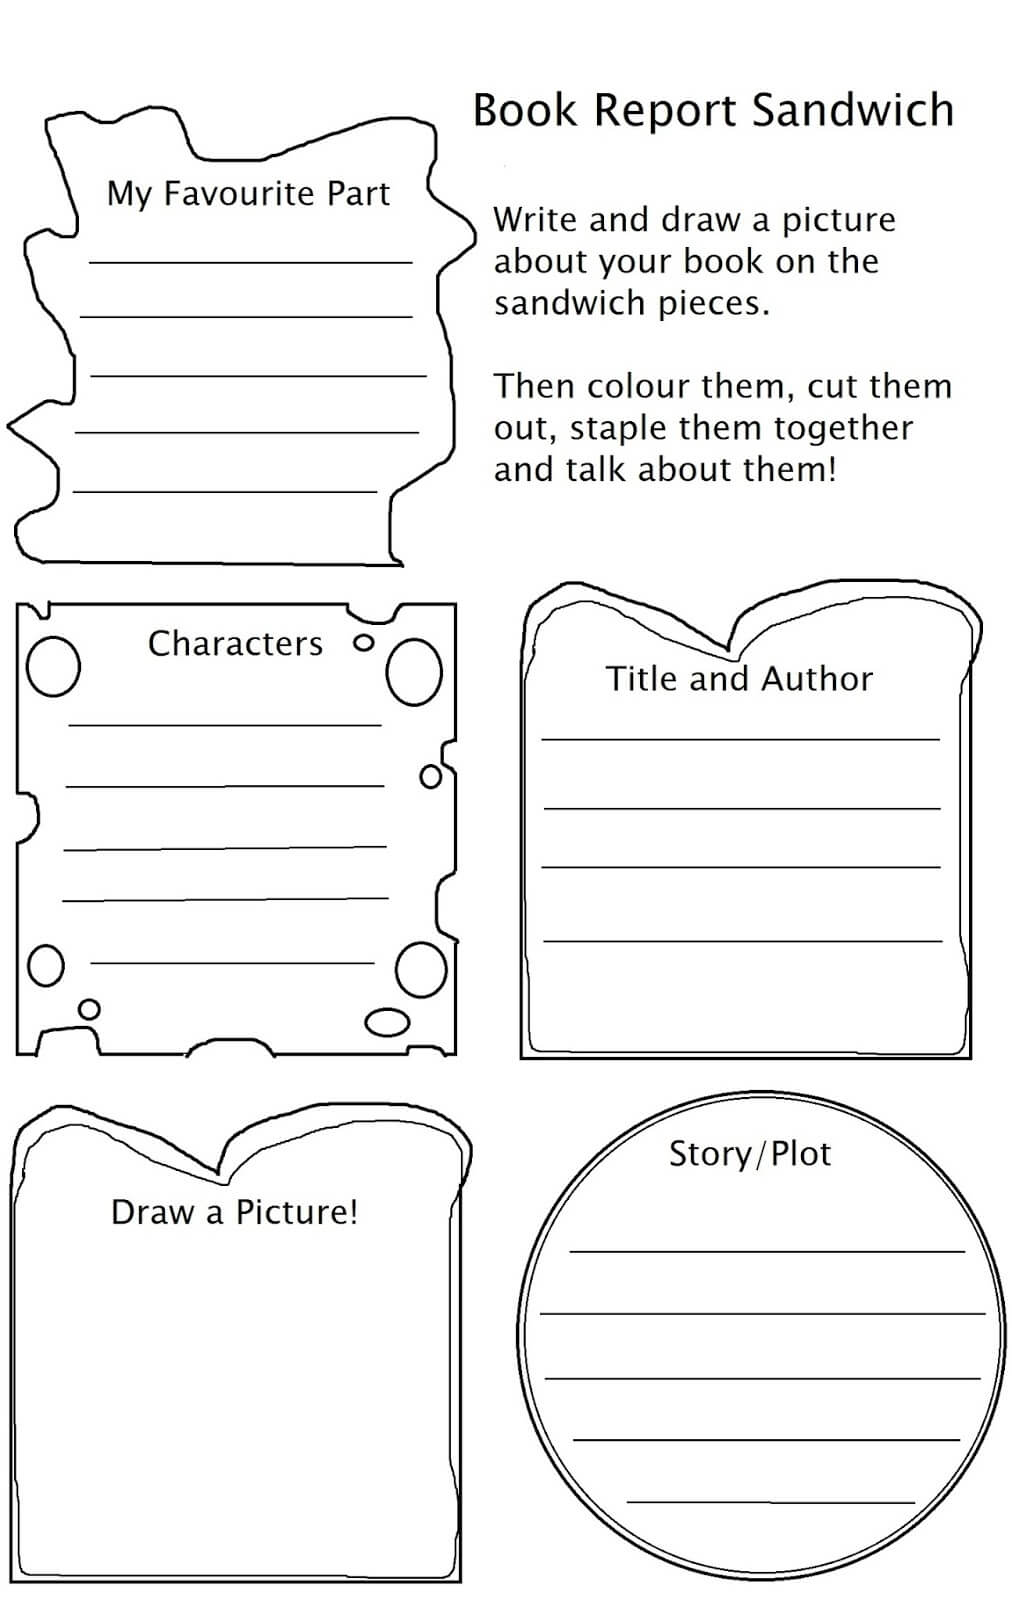 Sandwich Book Report Printable Template - Atlantaauctionco With Regard To Sandwich Book Report Printable Template